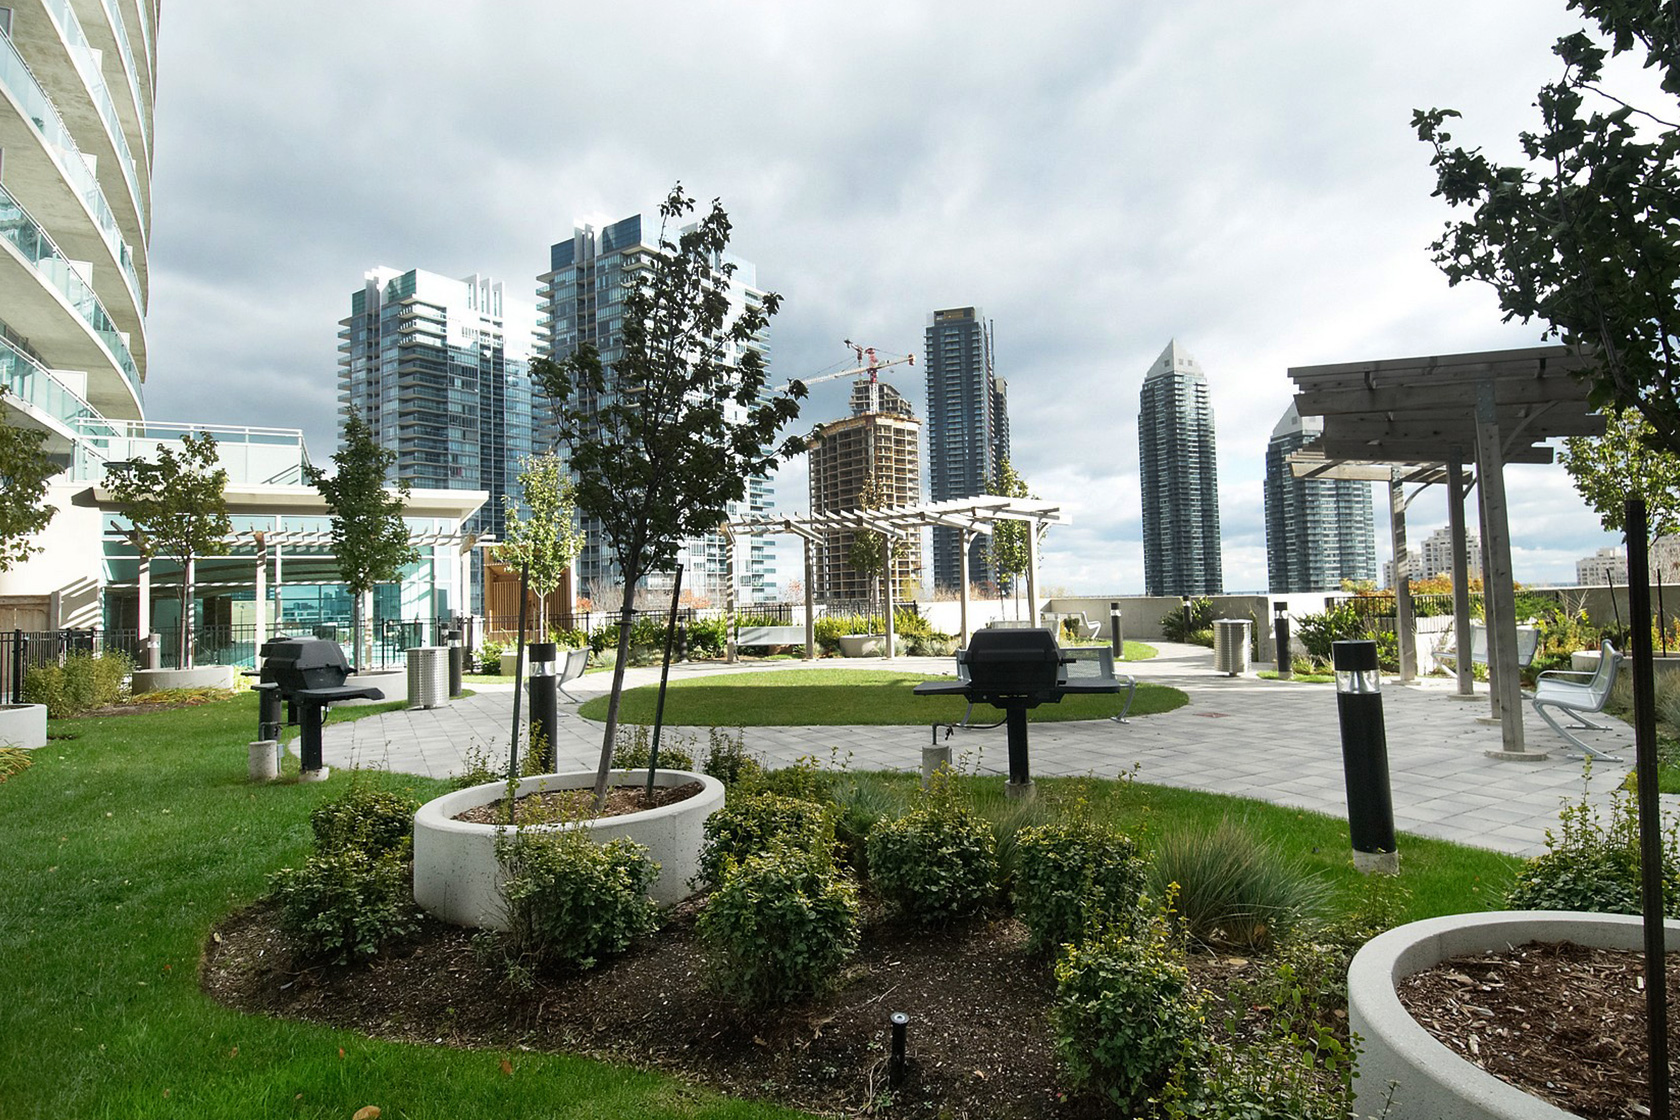 iloft iLoft at Mystic Pointe | Monthly Featured Condo | June 2017 155 legion rd n toronto etobicoke iloft ilofts condo park lawn condos humber bay condos outdoor terrace rooftop terrace